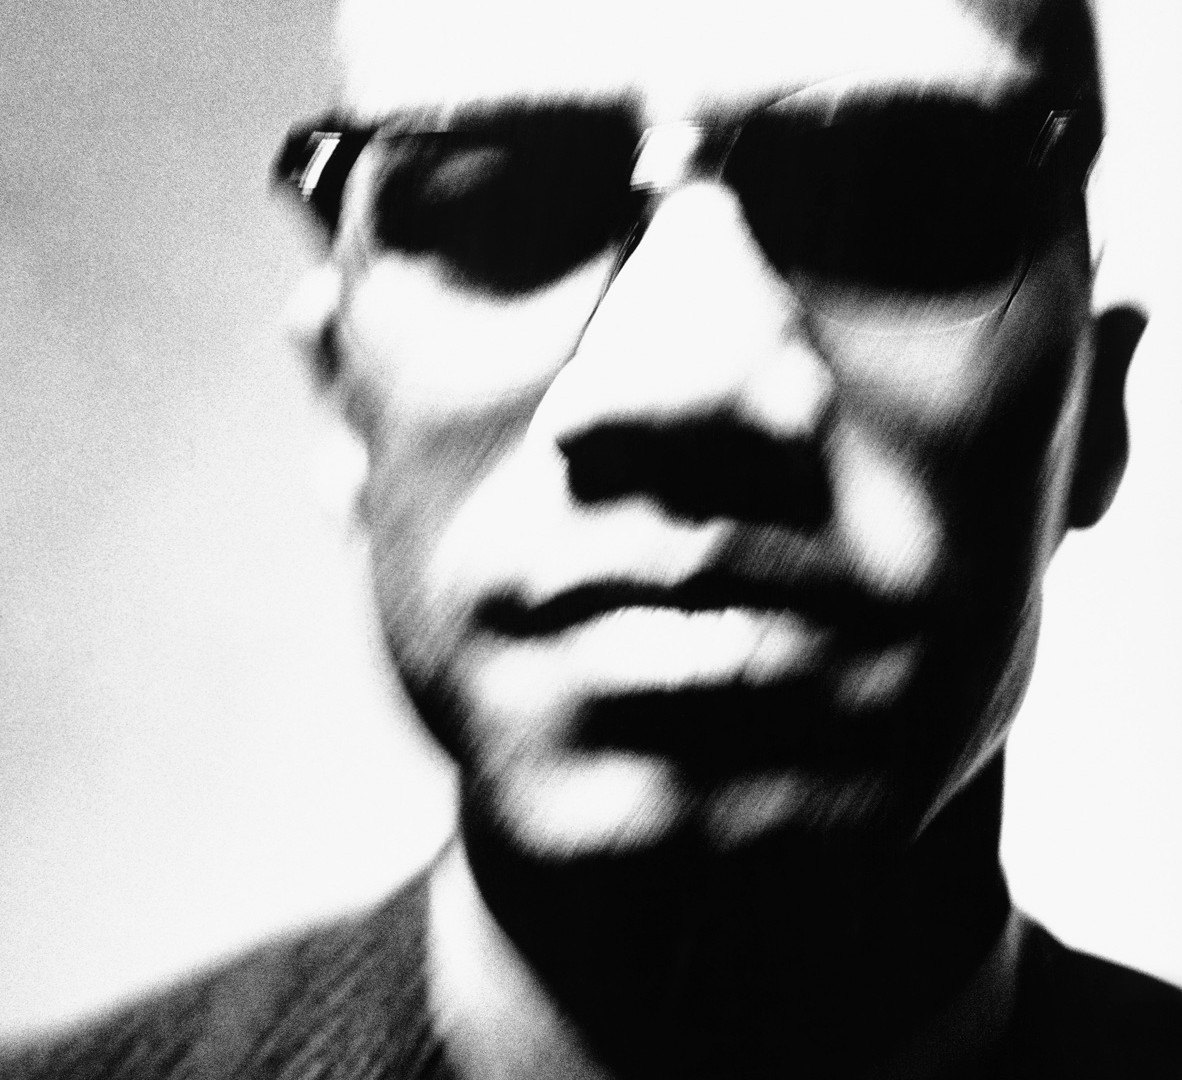 Richard Avedon, Malcolm X, Black Nationalist leader, New York, March 27, 1963